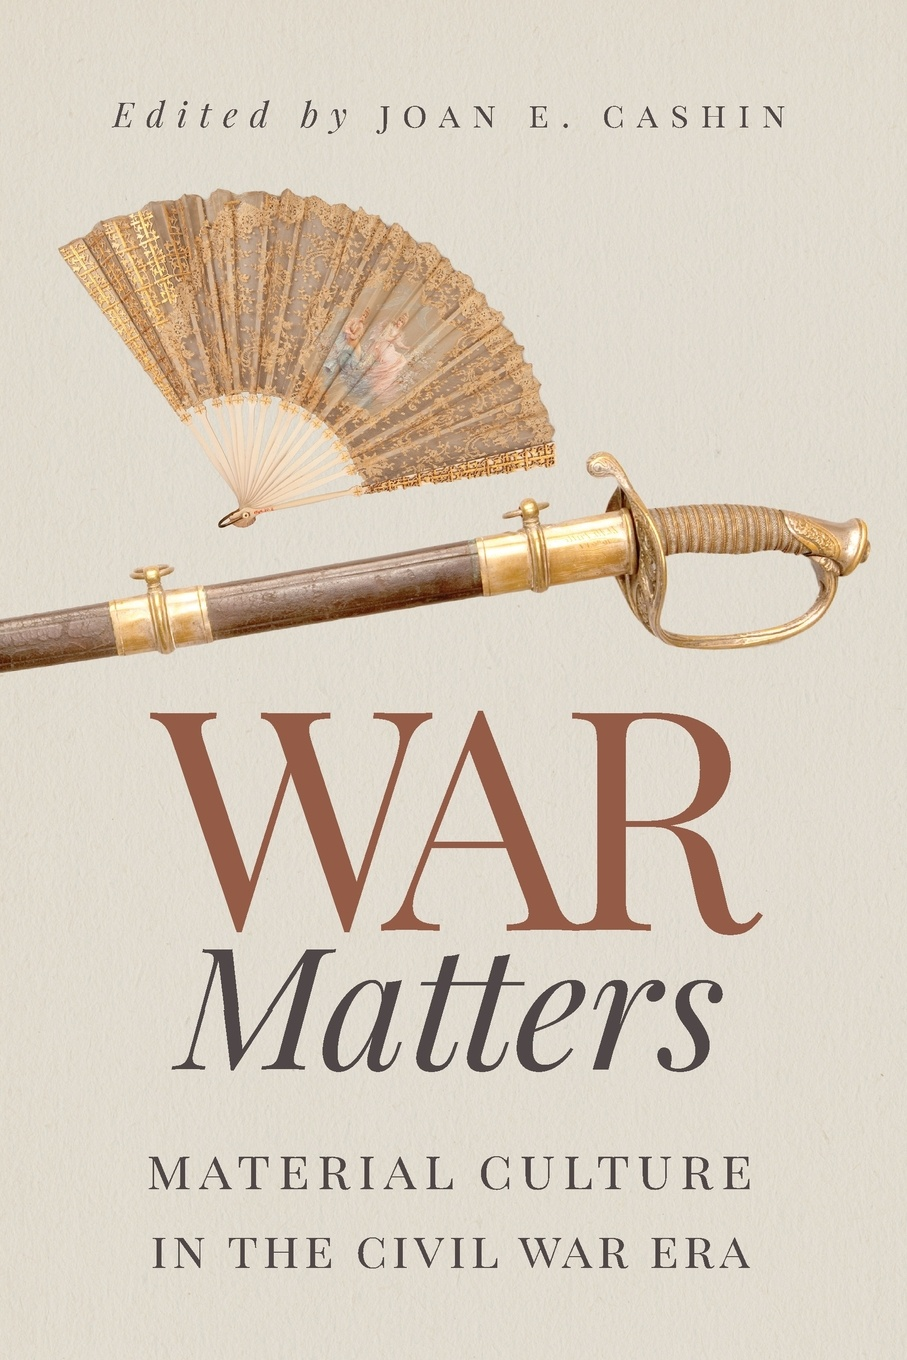 War Matters. Material Culture in the Civil War Era